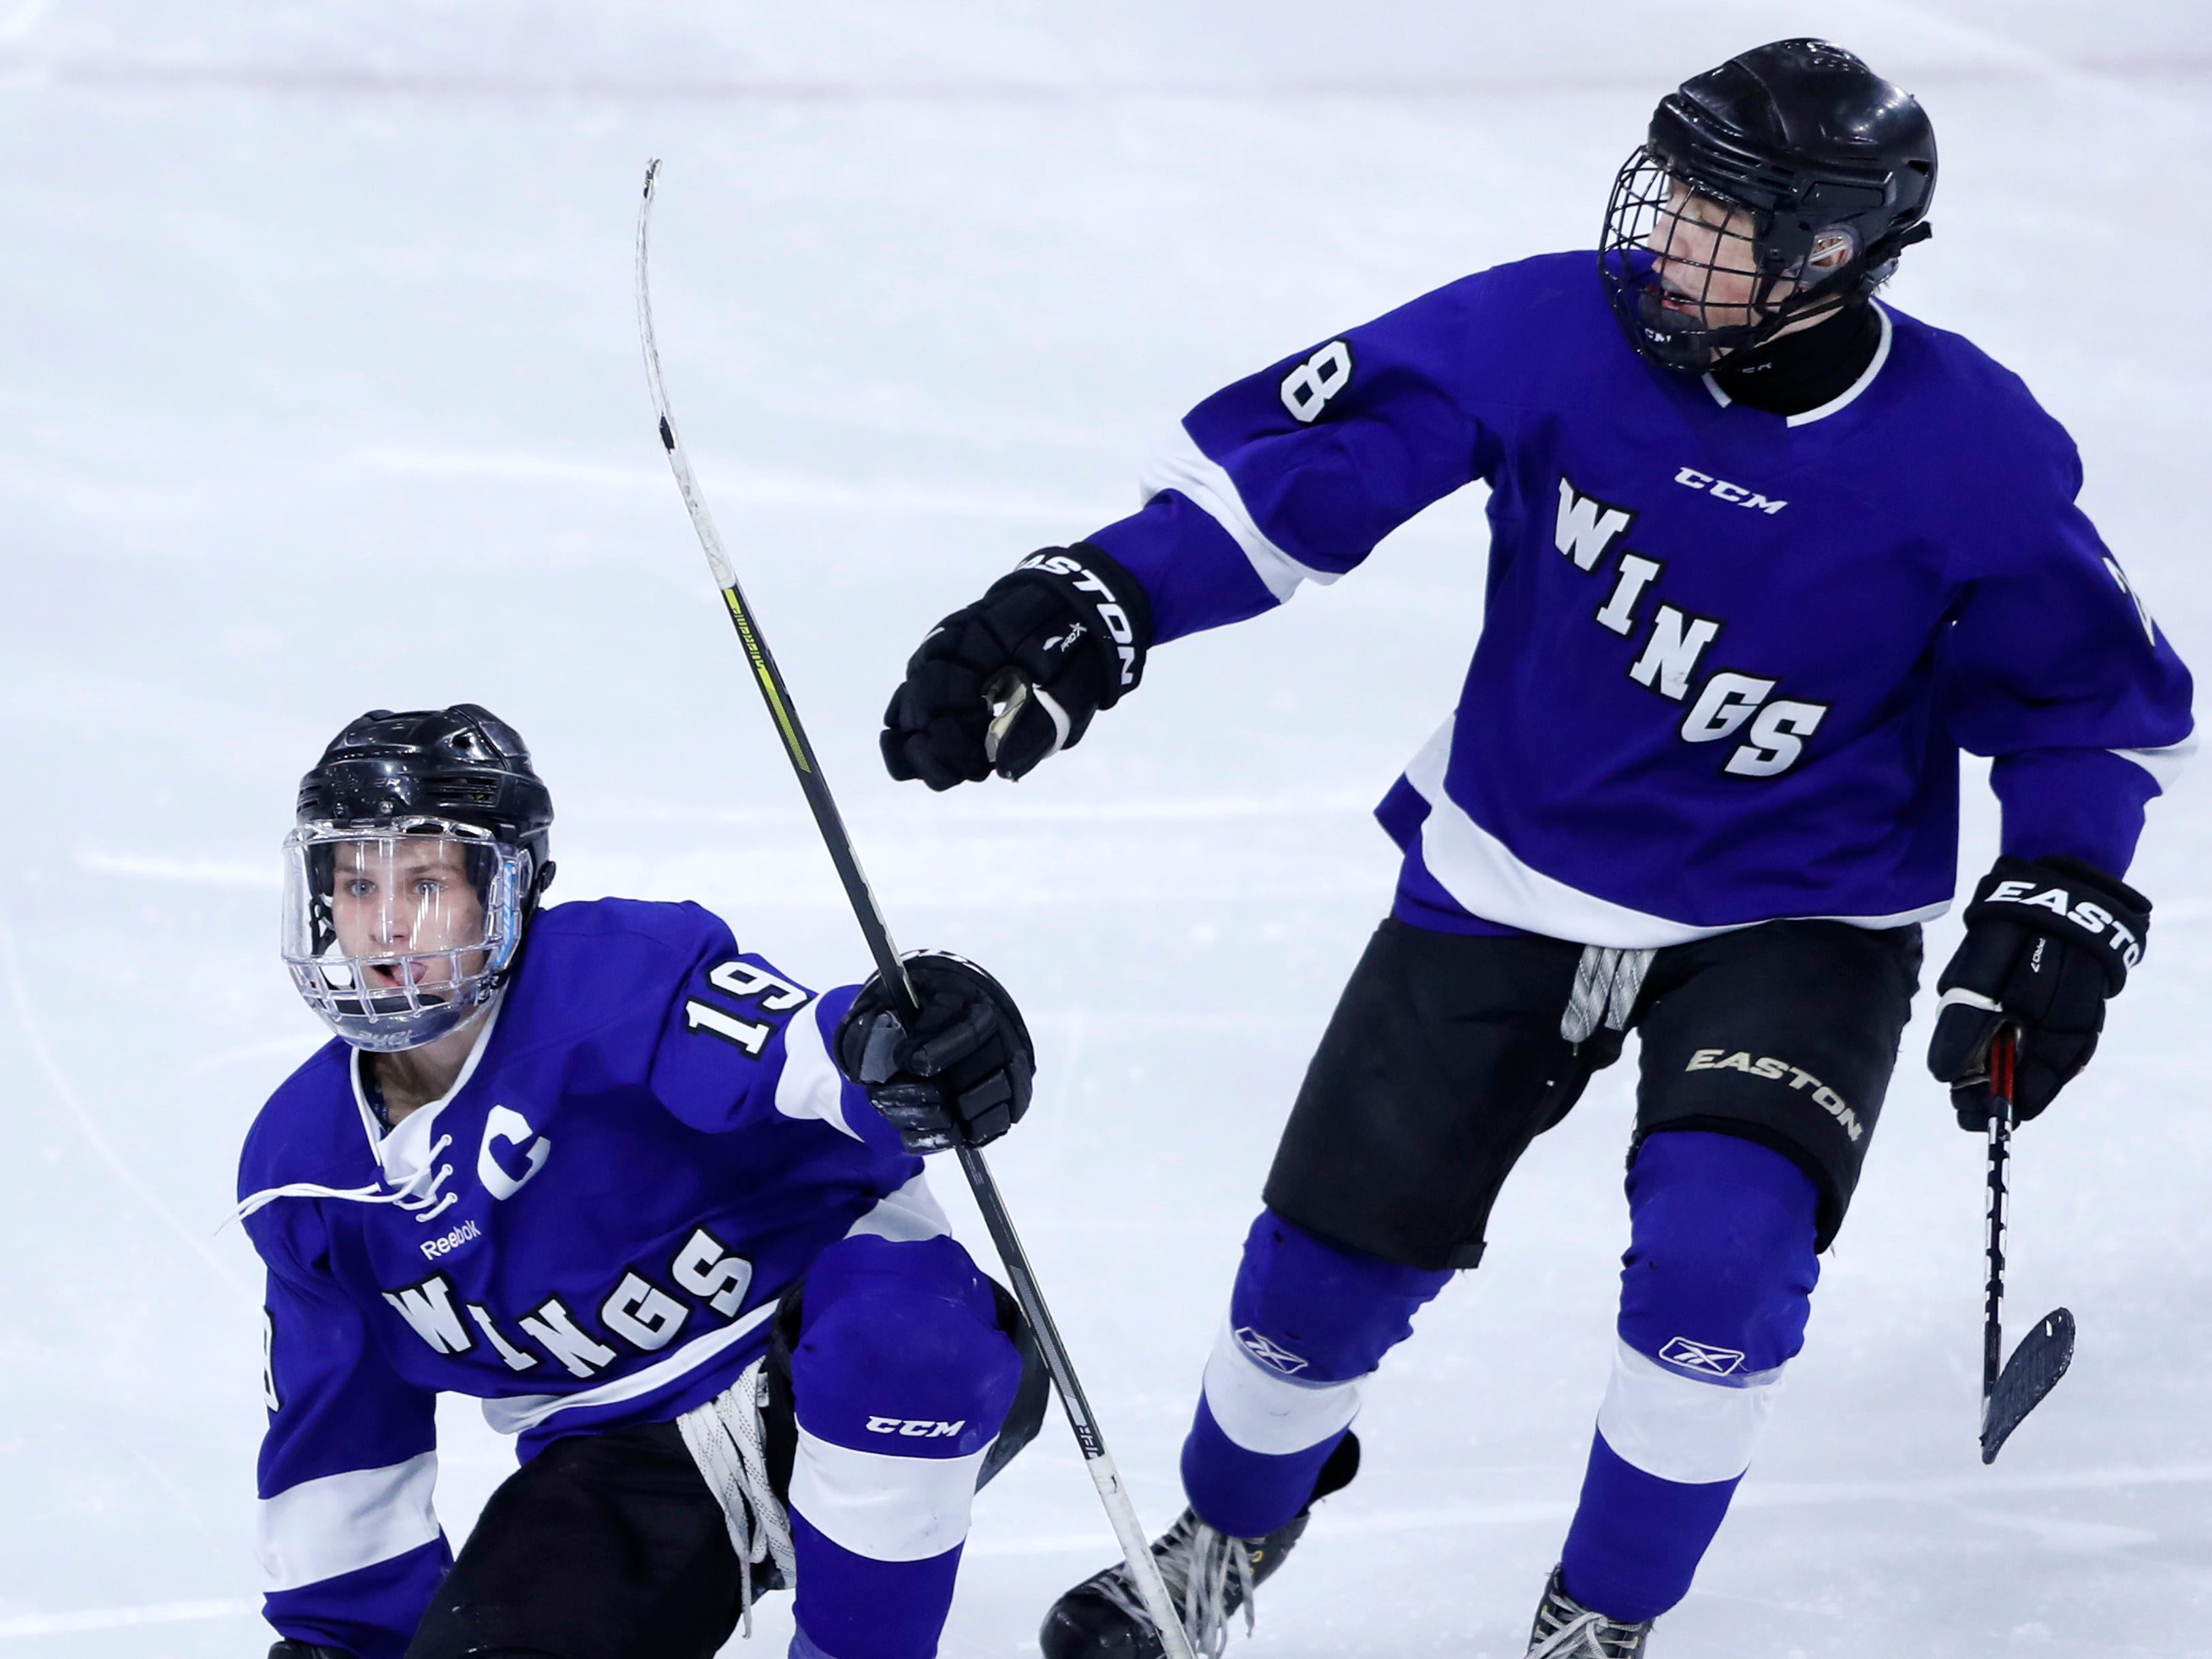 Waukesha North Co-op's Chad Larsen celebrates the game-winning goal against Wausau West during the WIAA State Hockey Tournament quarterfinals Thursday, Feb. 28, 2019, at Veterans Memorial Coliseum in Madison, Wis.